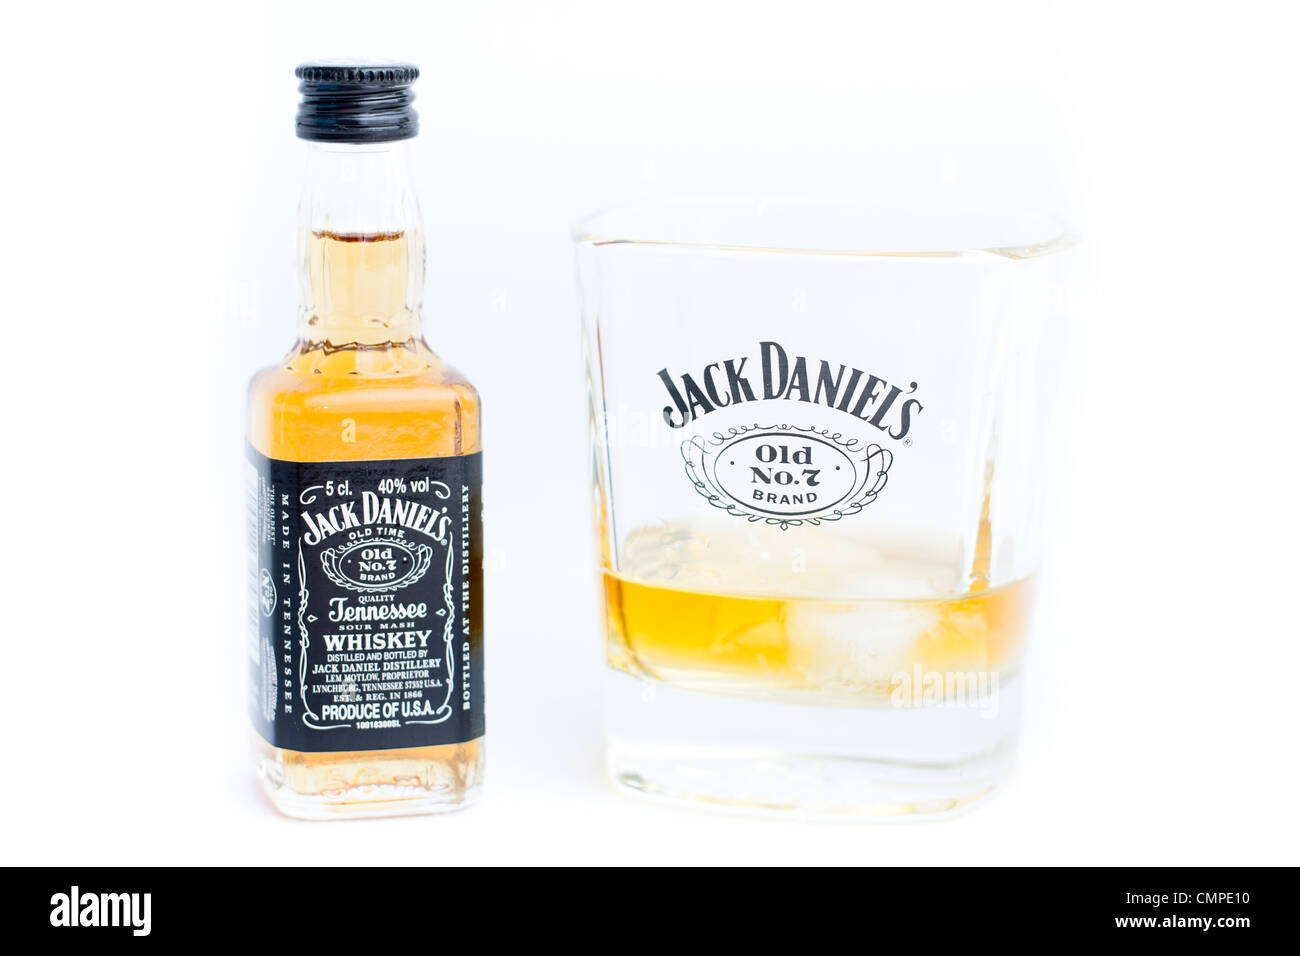 29c0204a3586d A miniature Jack Daniels bottle and glass of whiskey. Jack Daniels Old No. 7